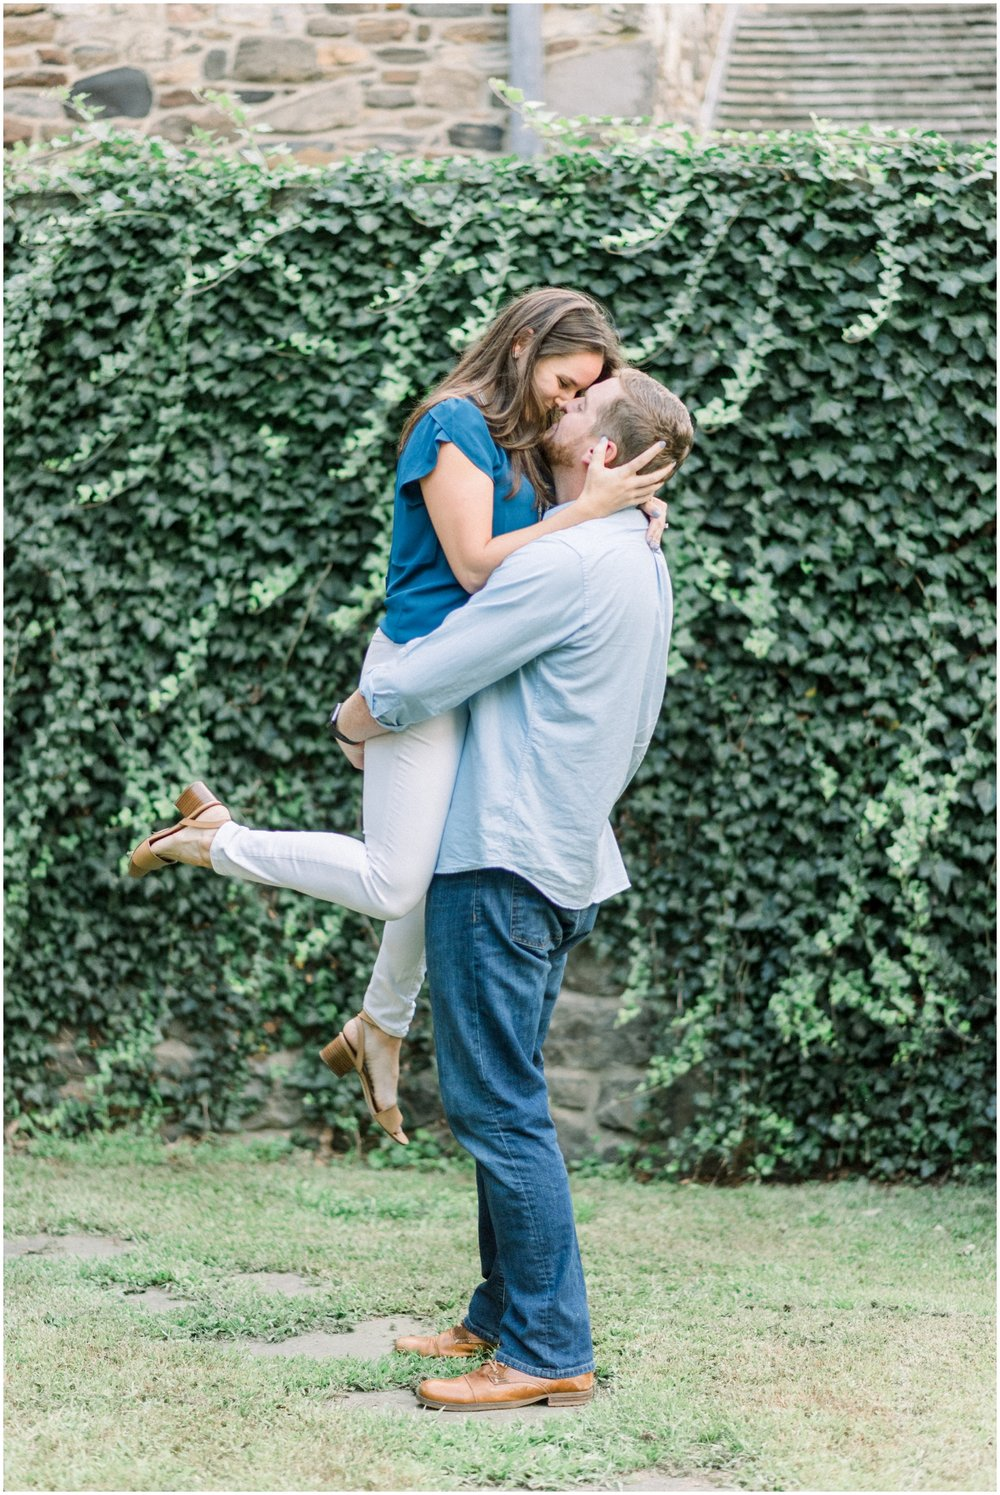 Summer Engagement Session at Hunting Hill Mansion - Krista Brackin Photography_0047.jpg